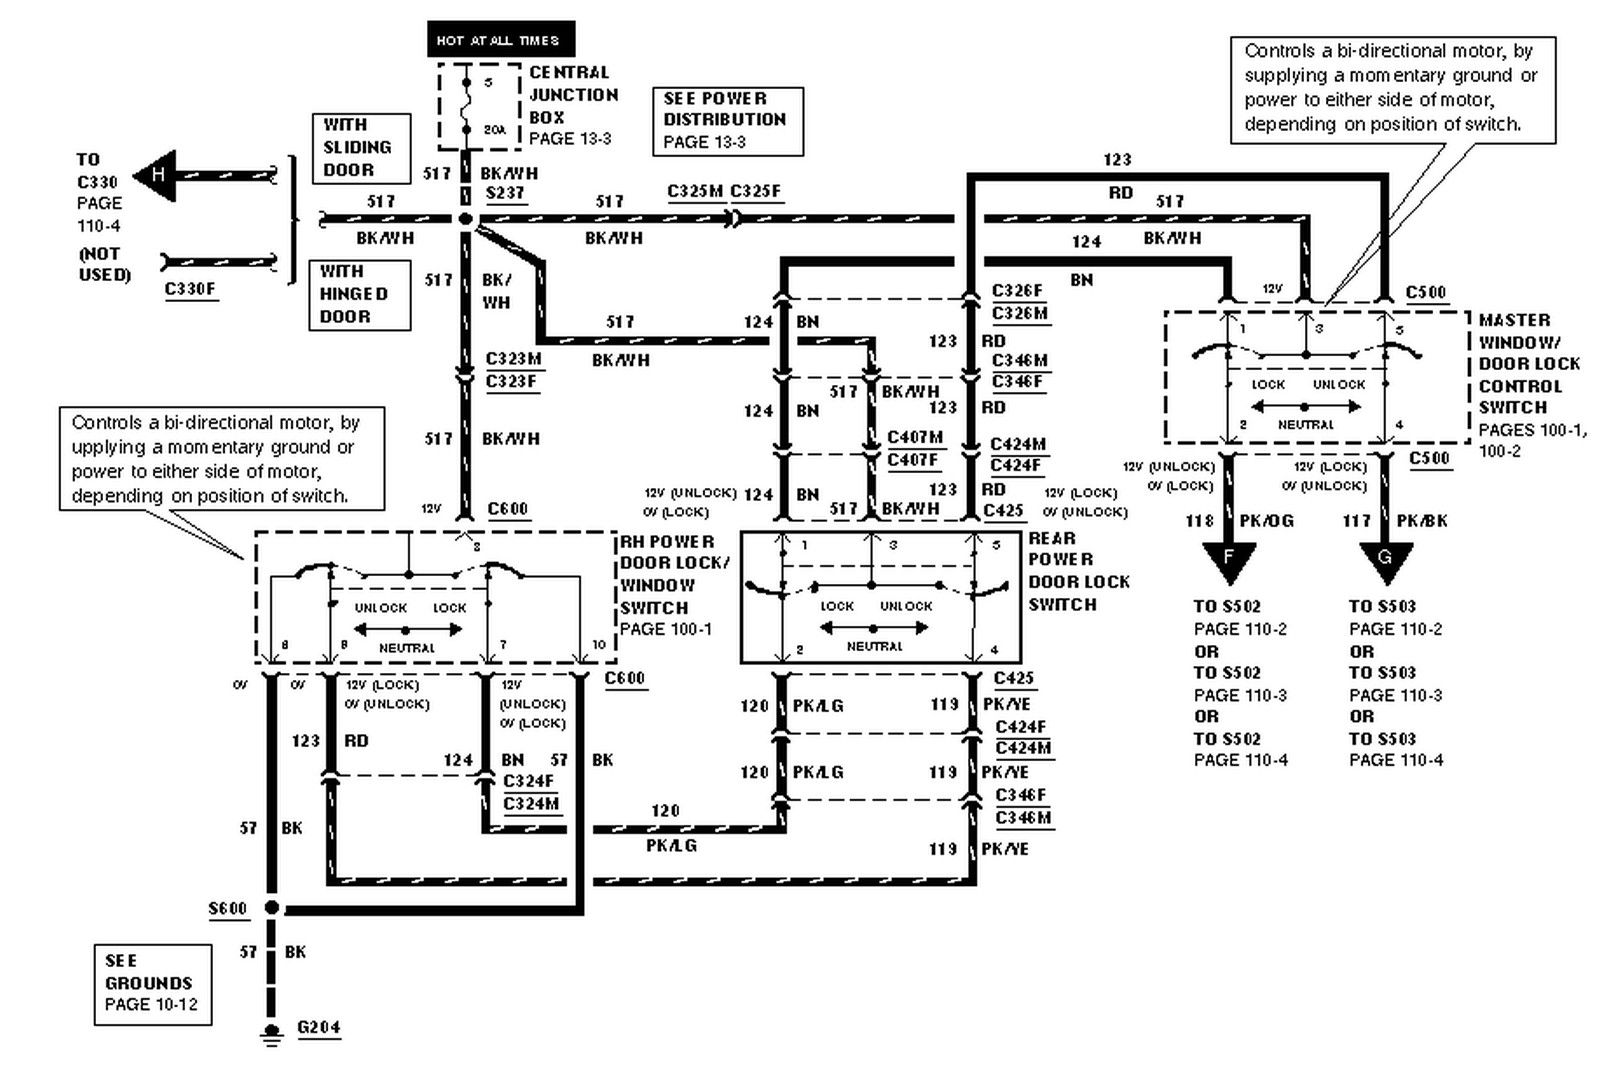 80 2010_11_05_235941_99_e_350_power_door_lock_wiring_diagram_e574233ae37af9677ff5fddb790386a28f9dd7ad 99 f150 wiring diagram 99 f150 stereo wiring diagram \u2022 wiring stereo wiring harness advance auto at gsmx.co